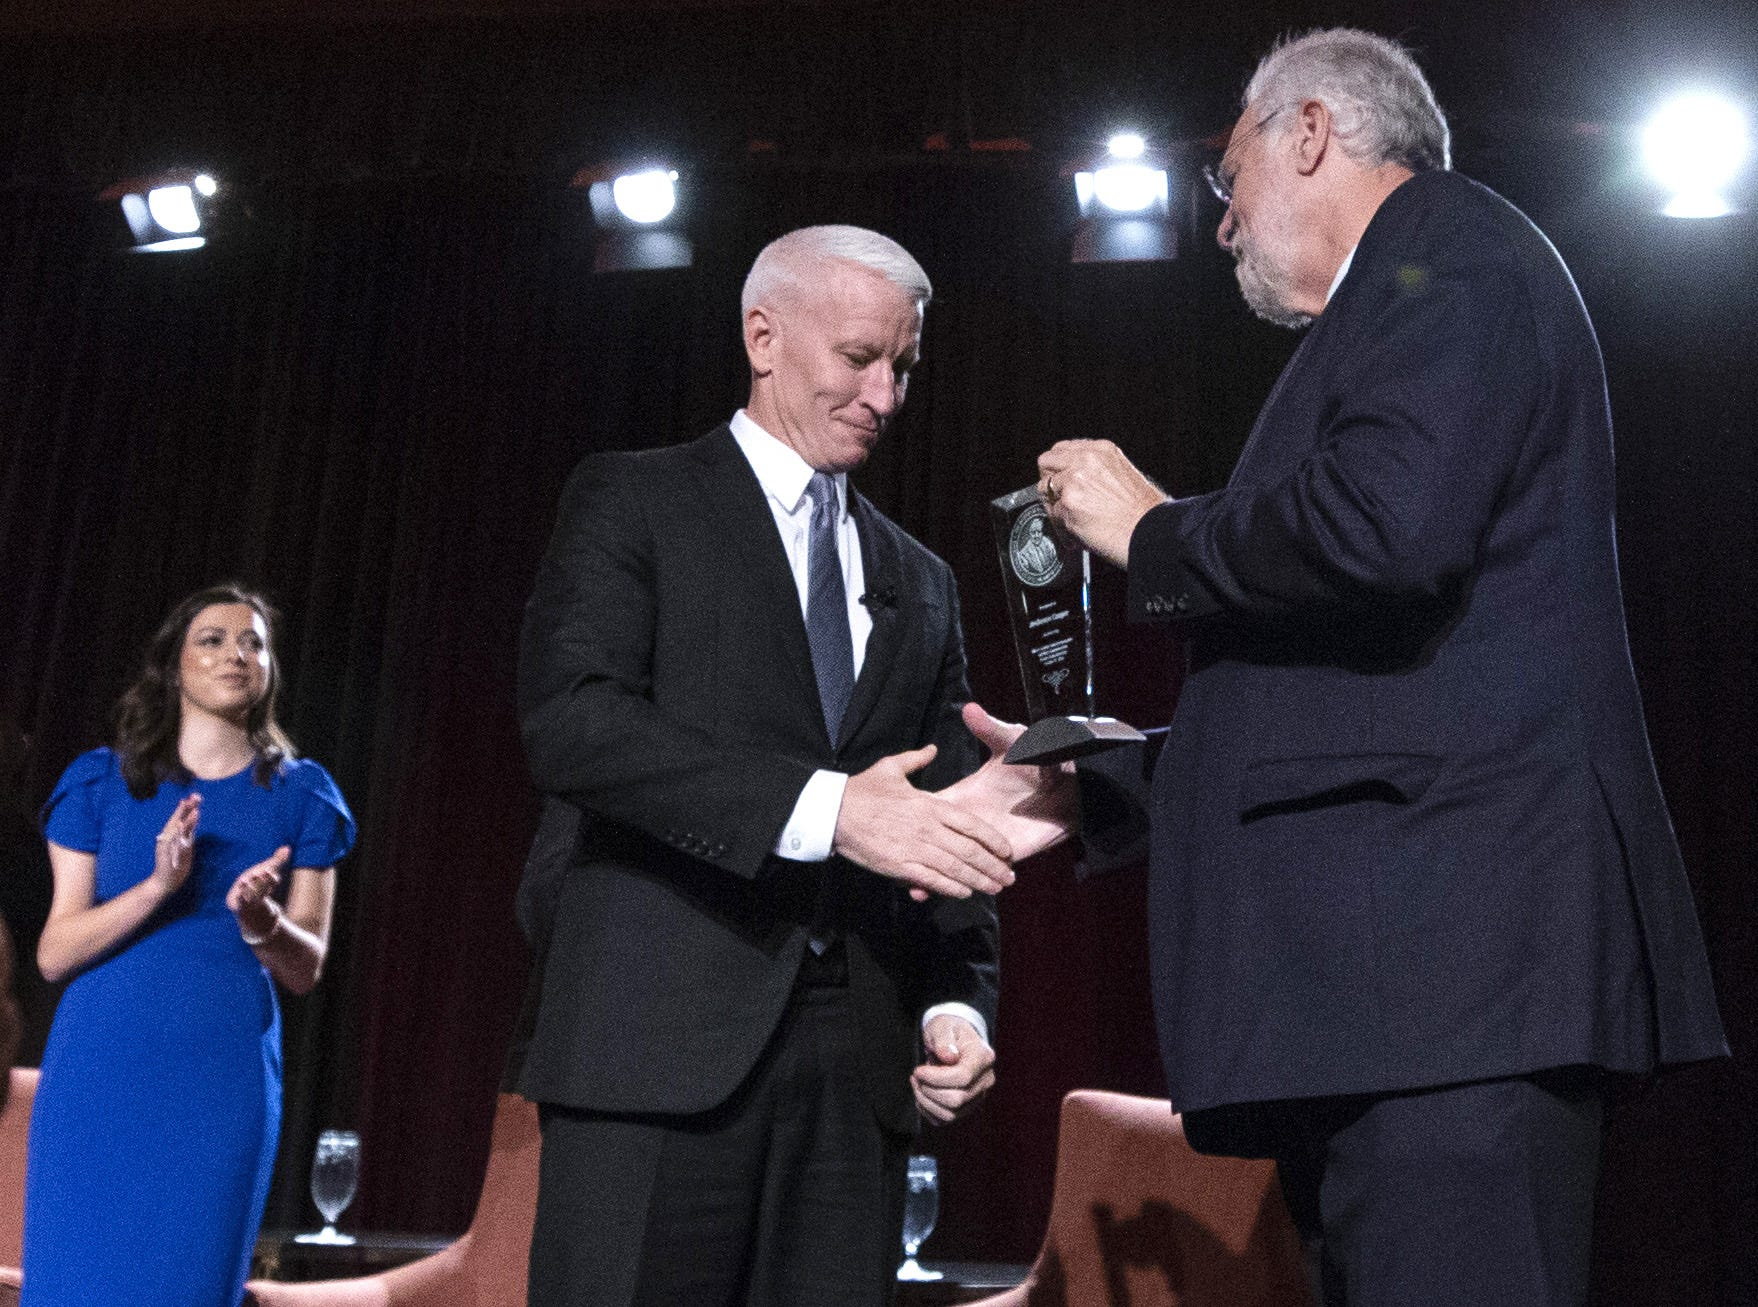 Arizona State University executive Vice President and University Provost Dr. Mark Searle, right, presents CNN anchor Anderson Cooper with the annual Cronkite award for excellence in journalism during a luncheon at the Sheraton in Phoenix on October 17, 2018.